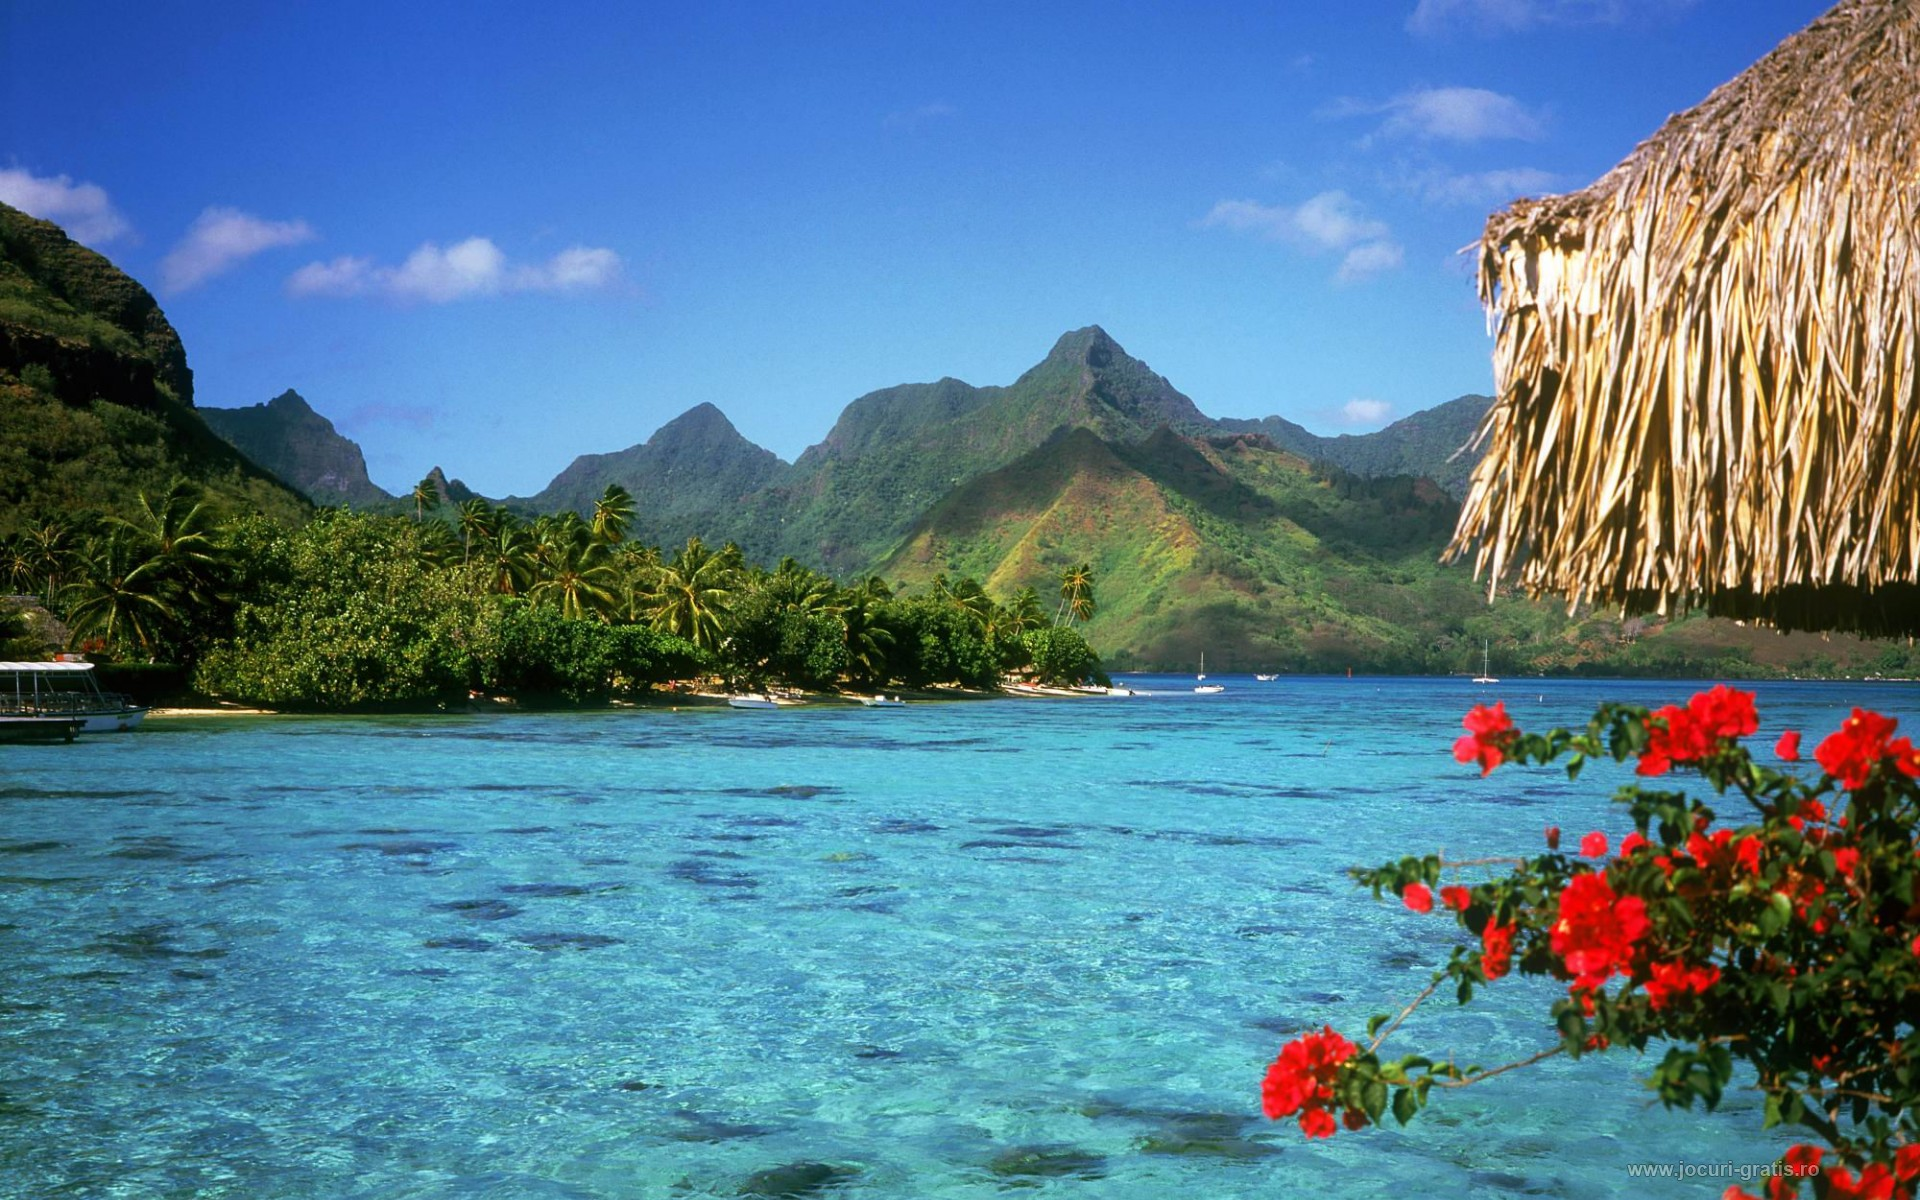 HD Wallpapers: Bahamas Wallpapers, Bahamas Pictures For Desktop, Free ...